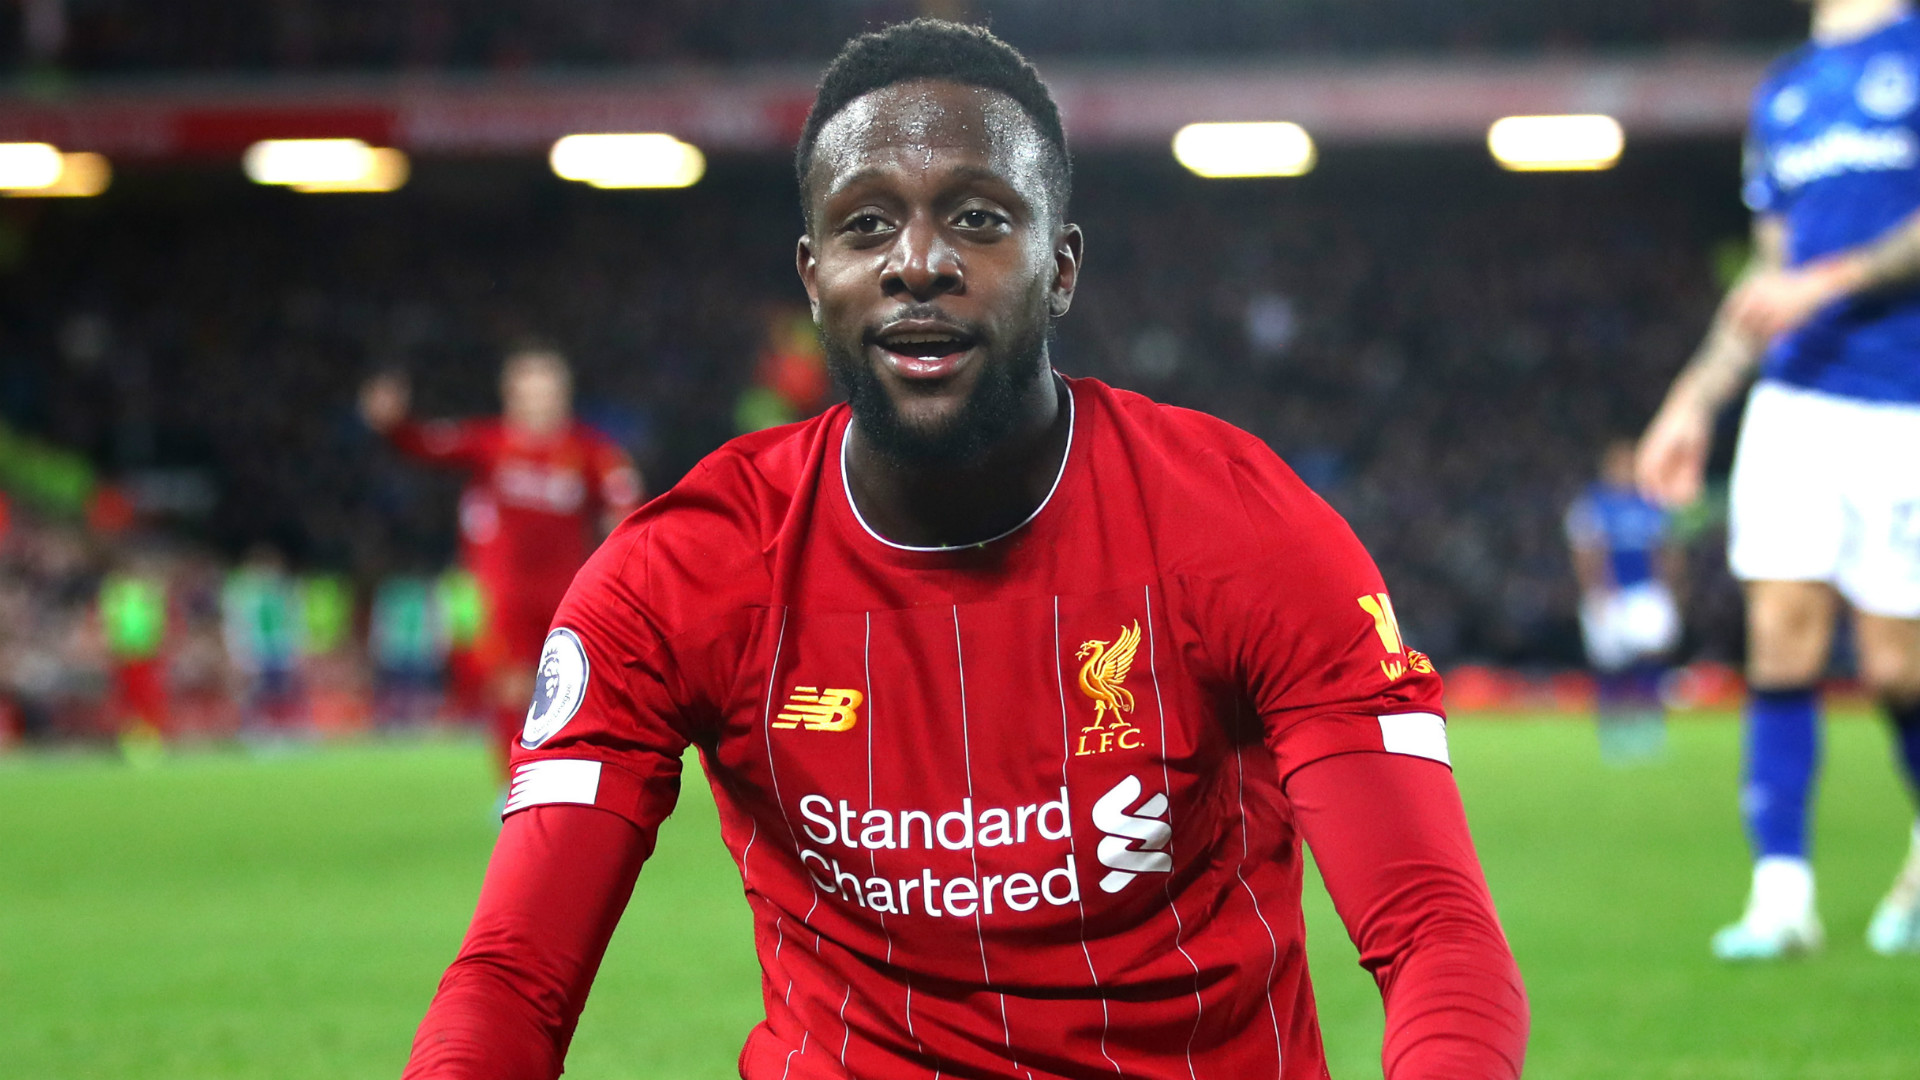 Liverpool's 'beautiful' Premier League title has not sunk in yet, says Origi